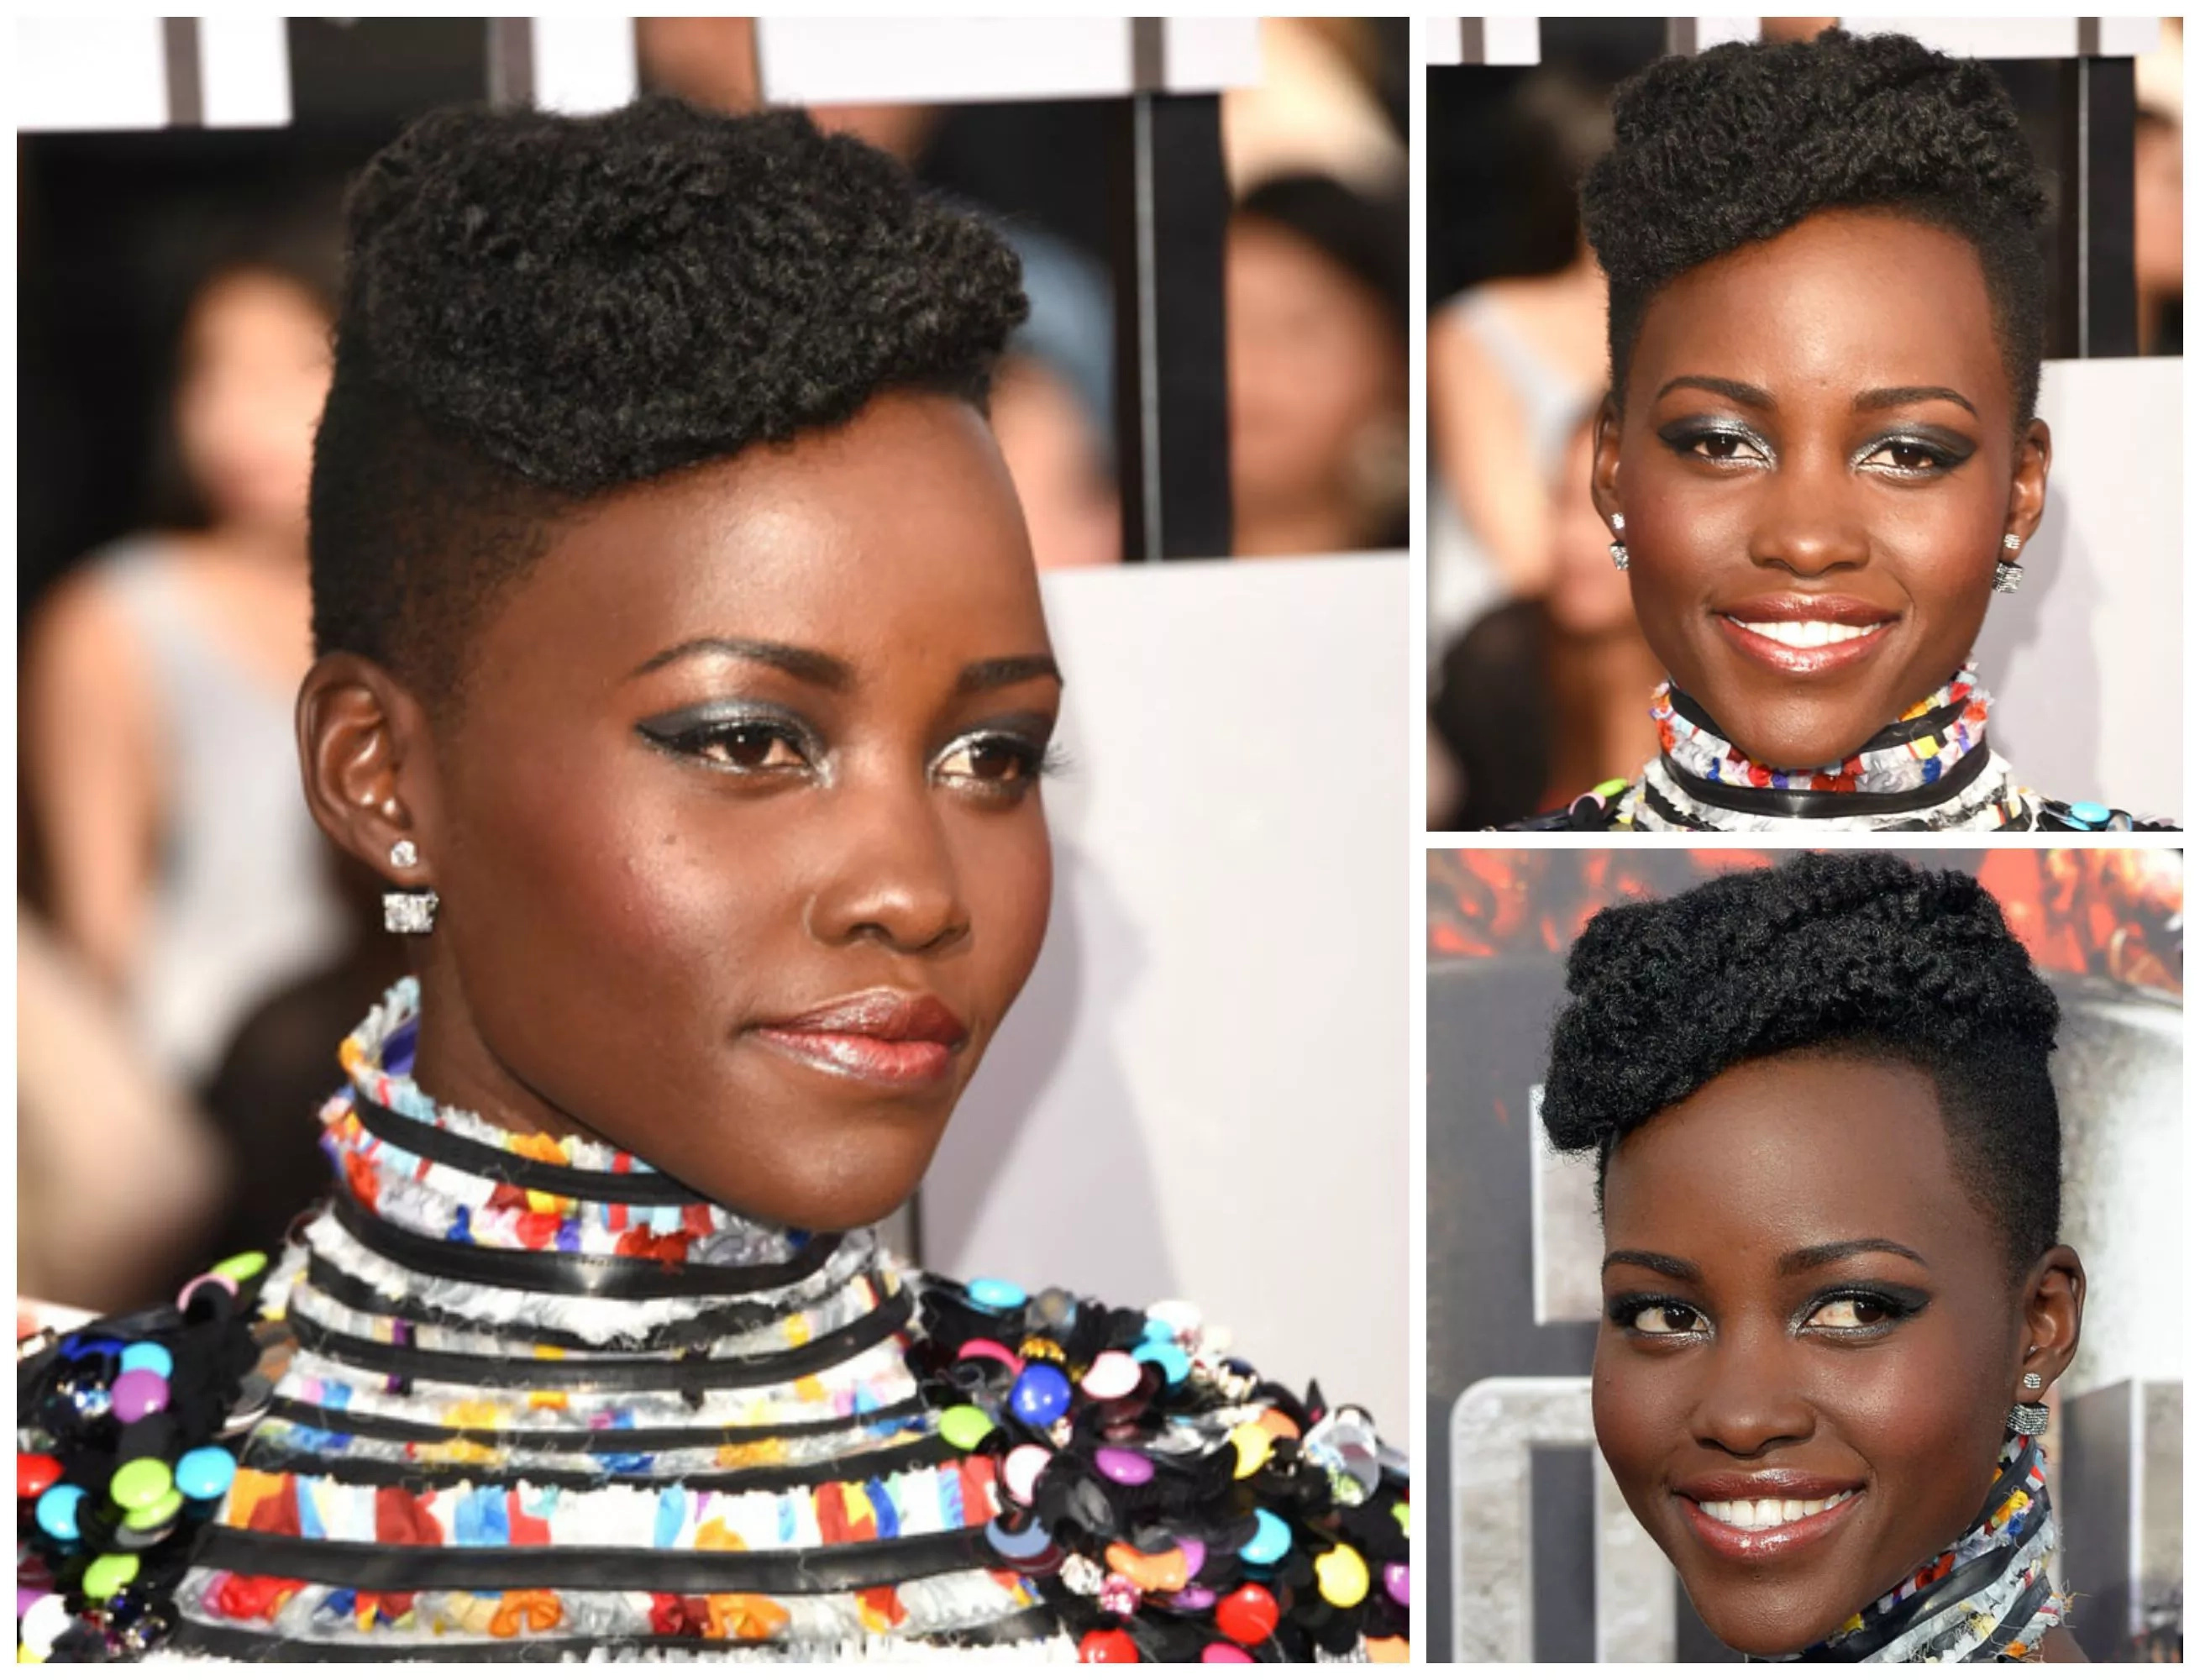 You will die of envy after seeing Lupita Nyong'o's lavish birthday party (photos)